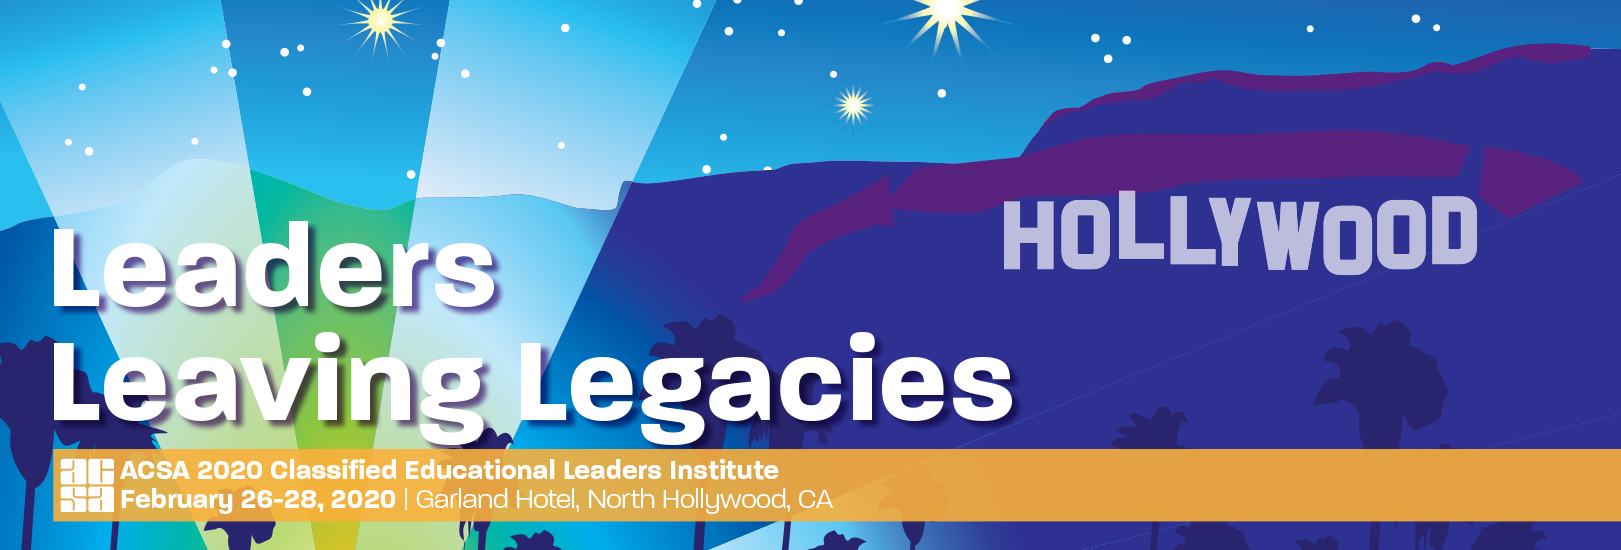 ACSA's 2020 Classified Educational Leaders Institute, February 26 to 28 in North Hollywood.